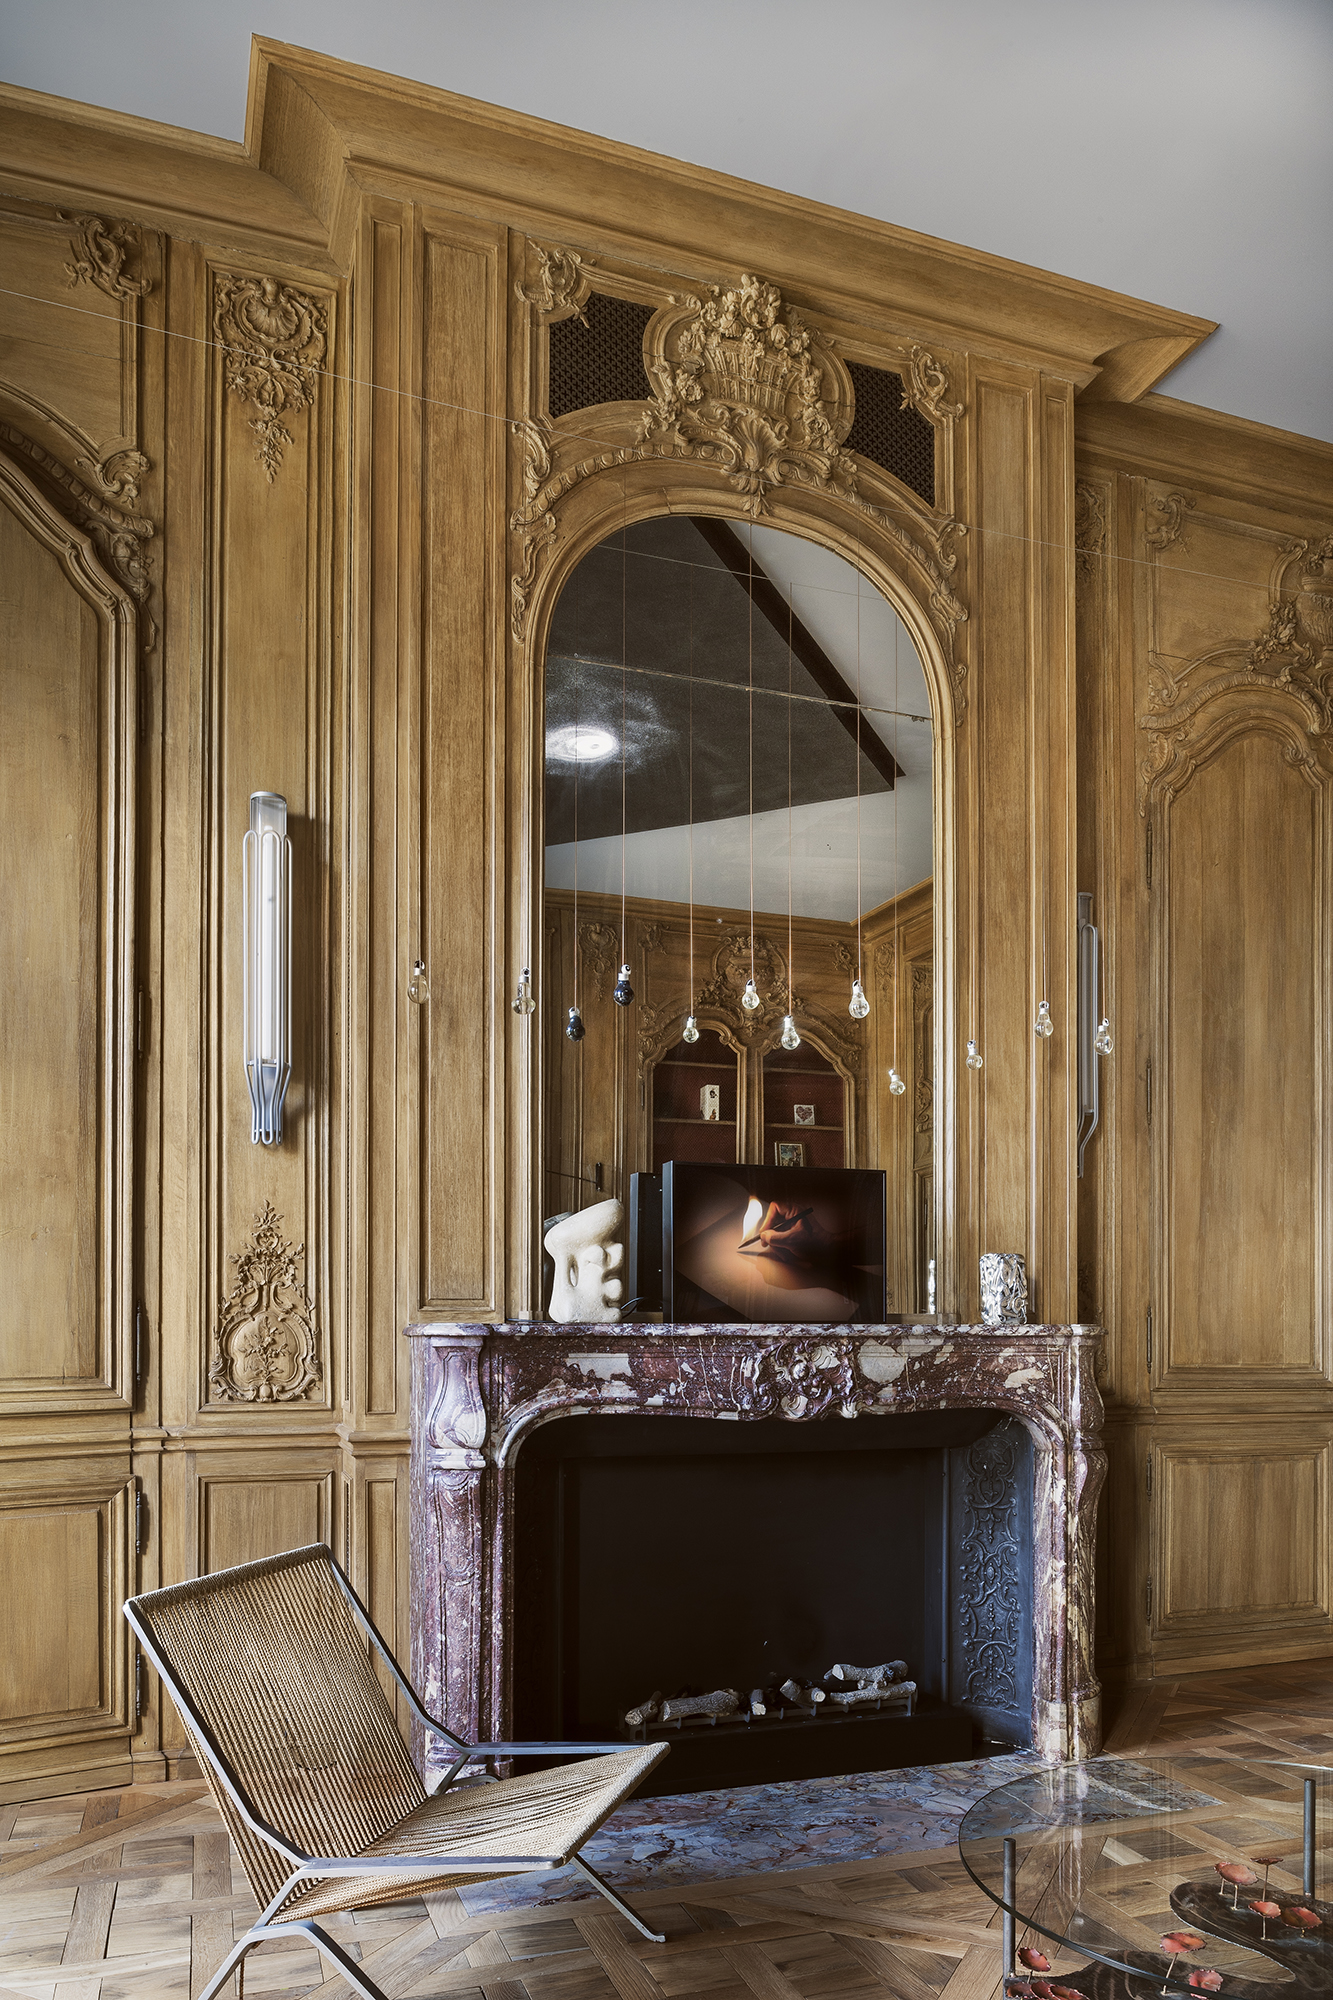 Louis XV boiserie scheme installed and restored by Féau Boiseries